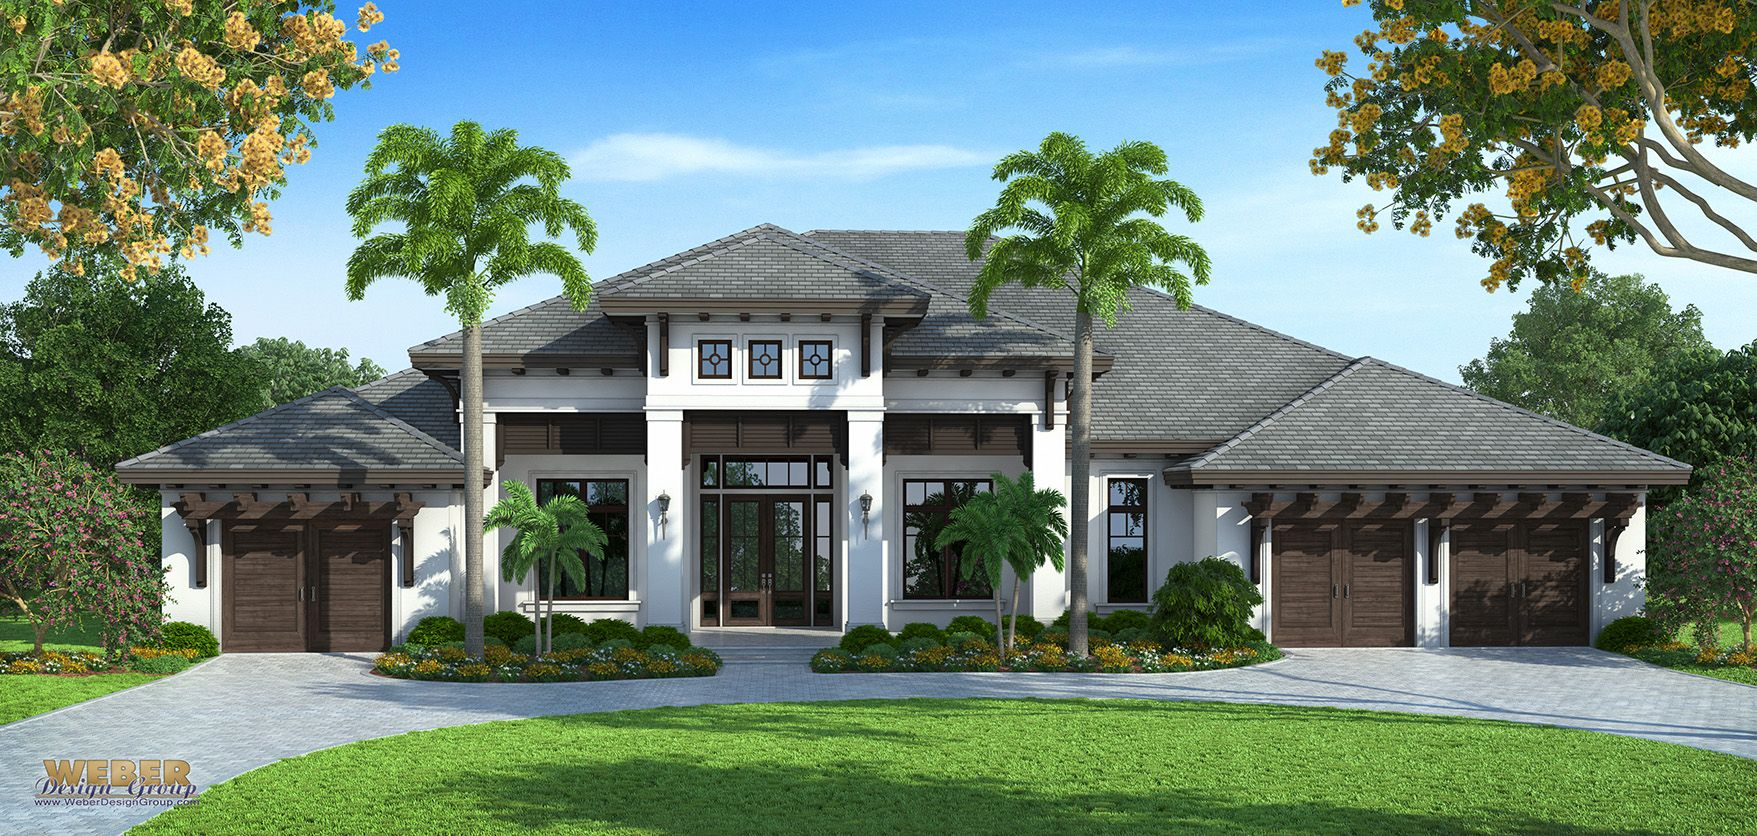 Transitional west indies style house plans by weber design Design house inc